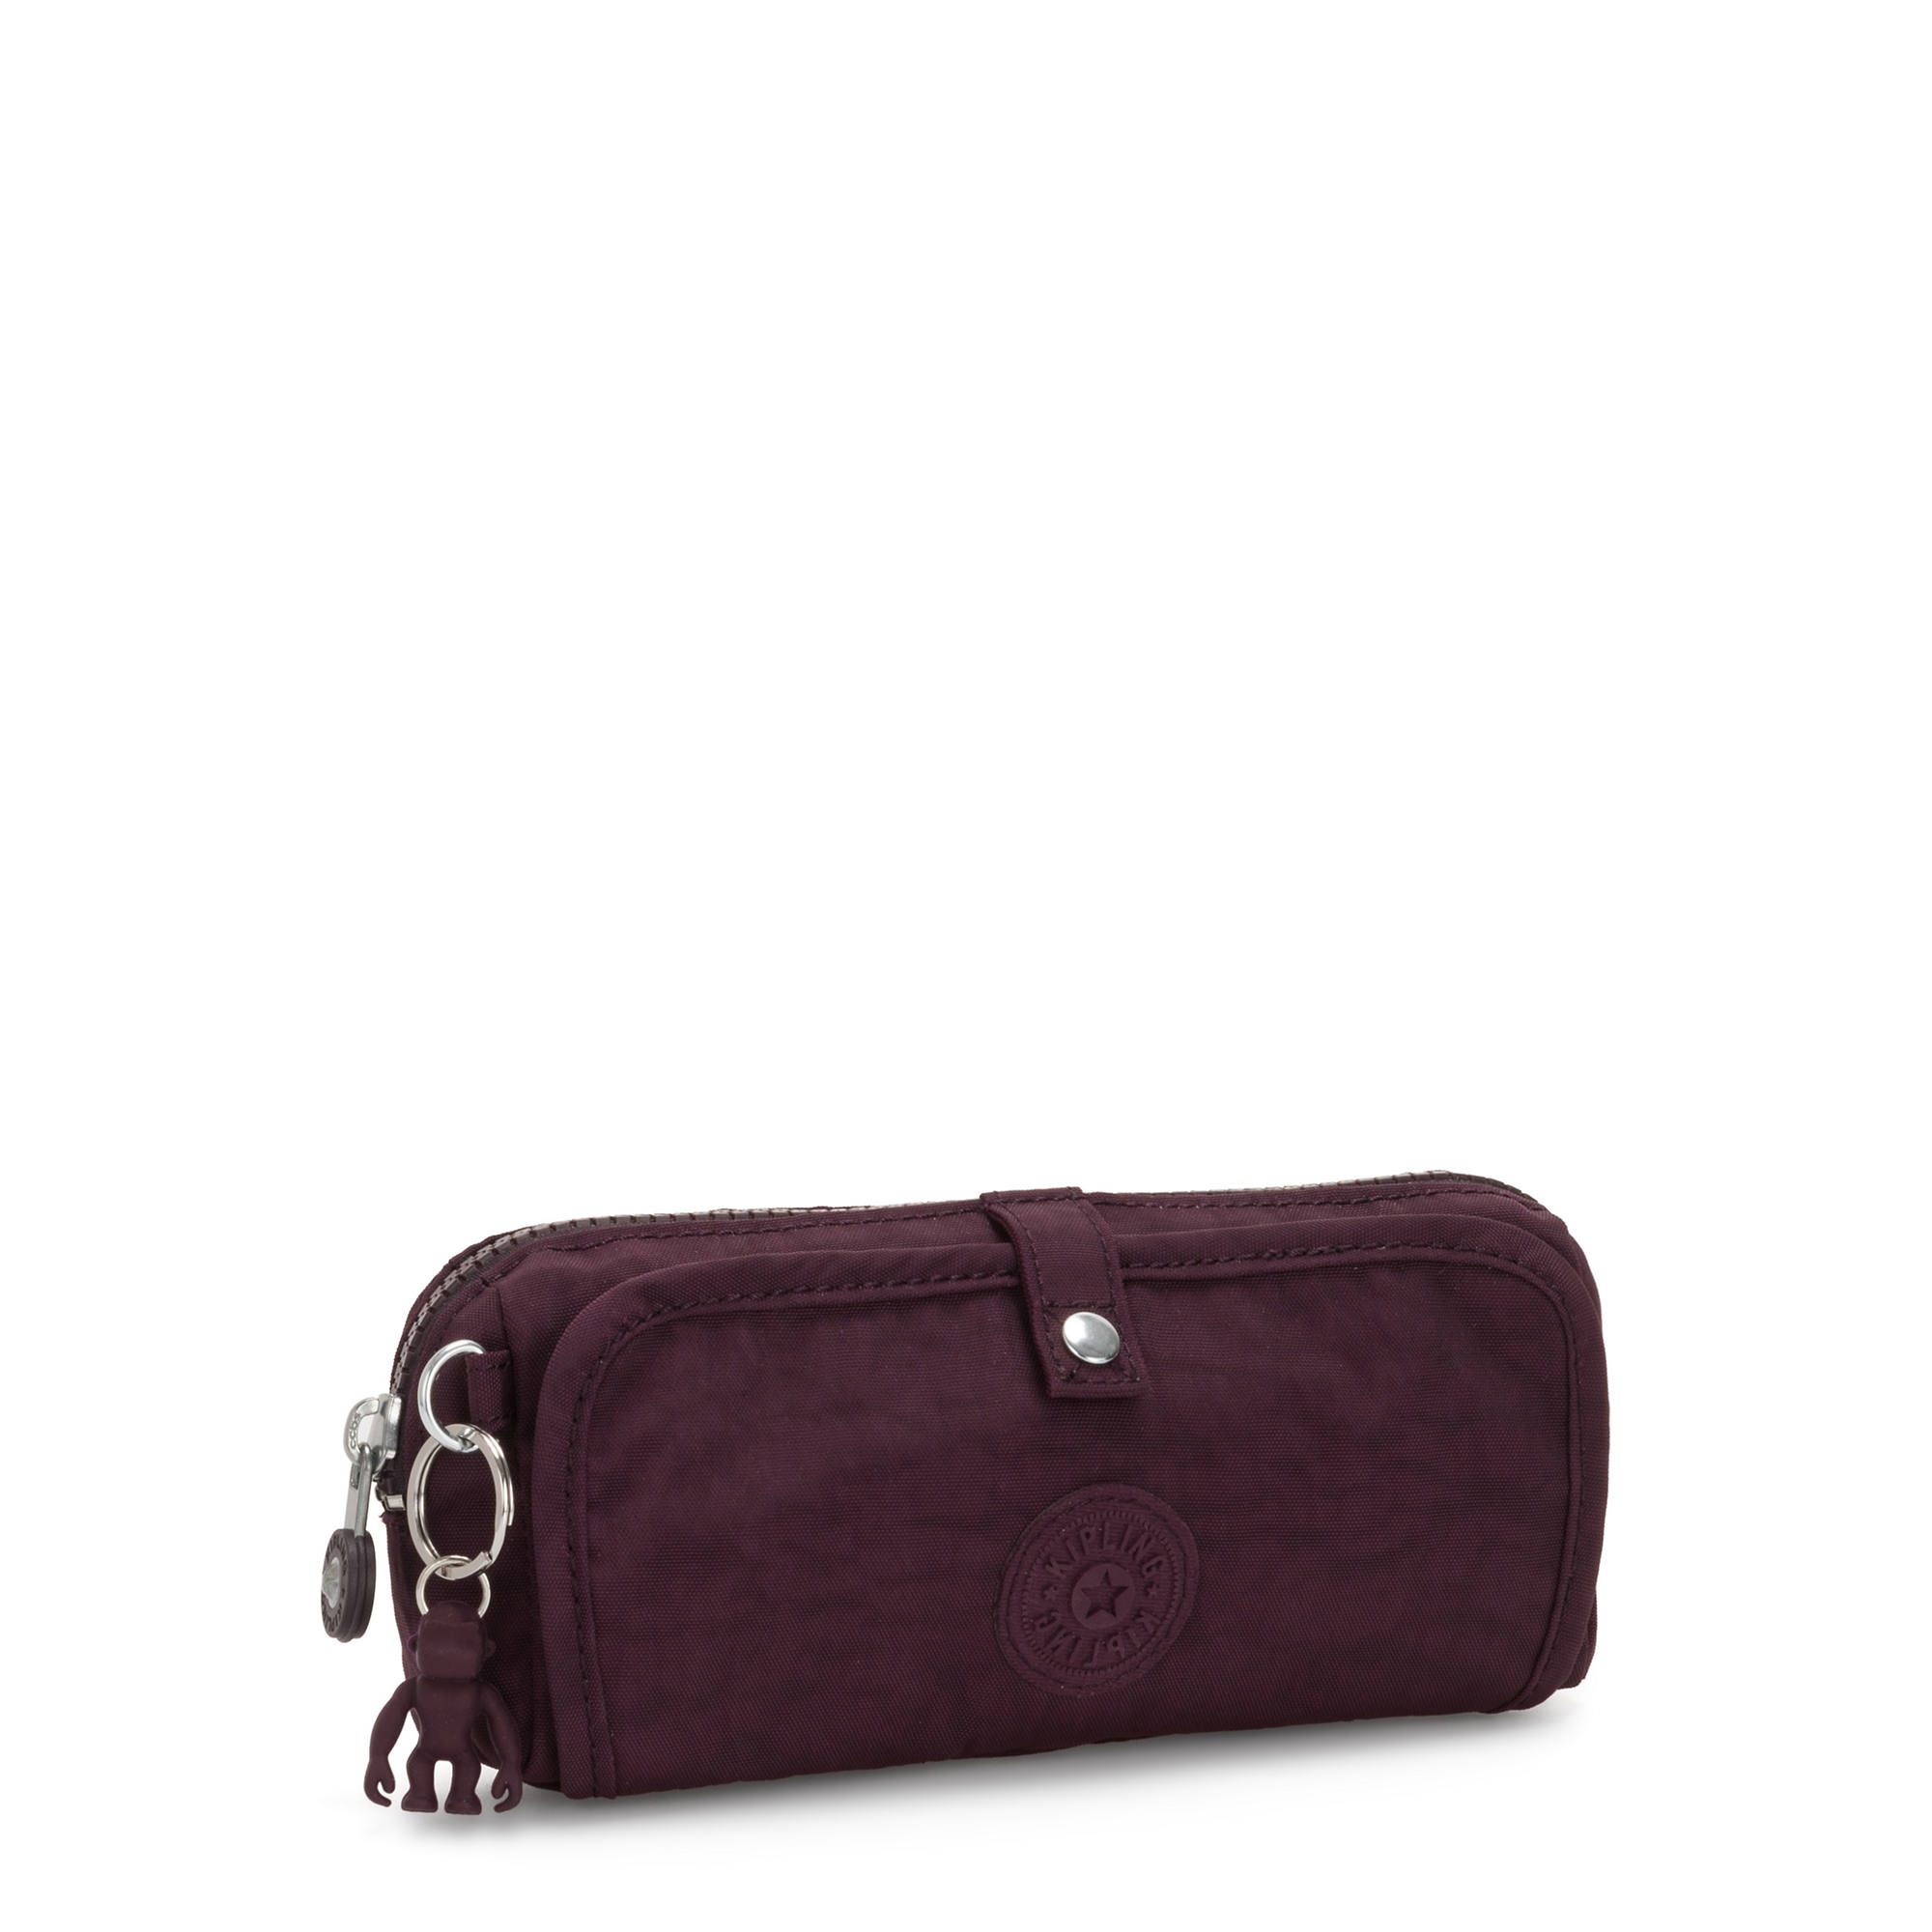 Wolfe Pencil Pouch